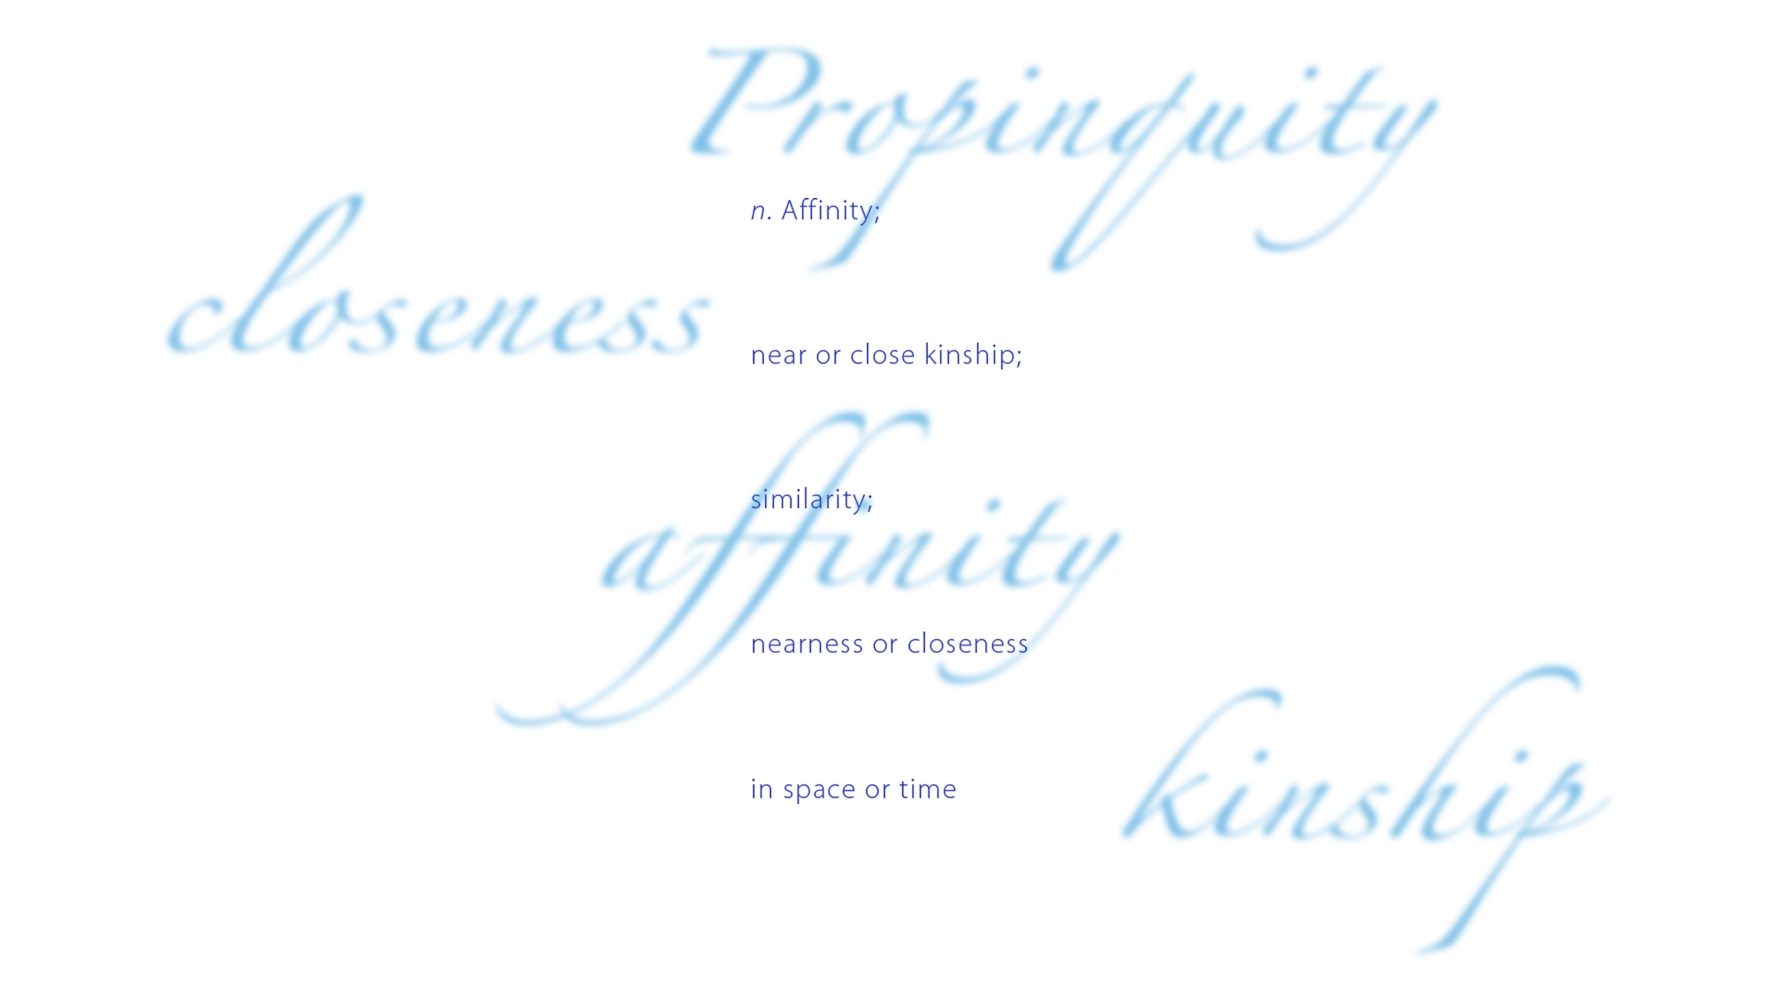 Affinity; near or close kinship; similarity; nearness or closeness; in space or time